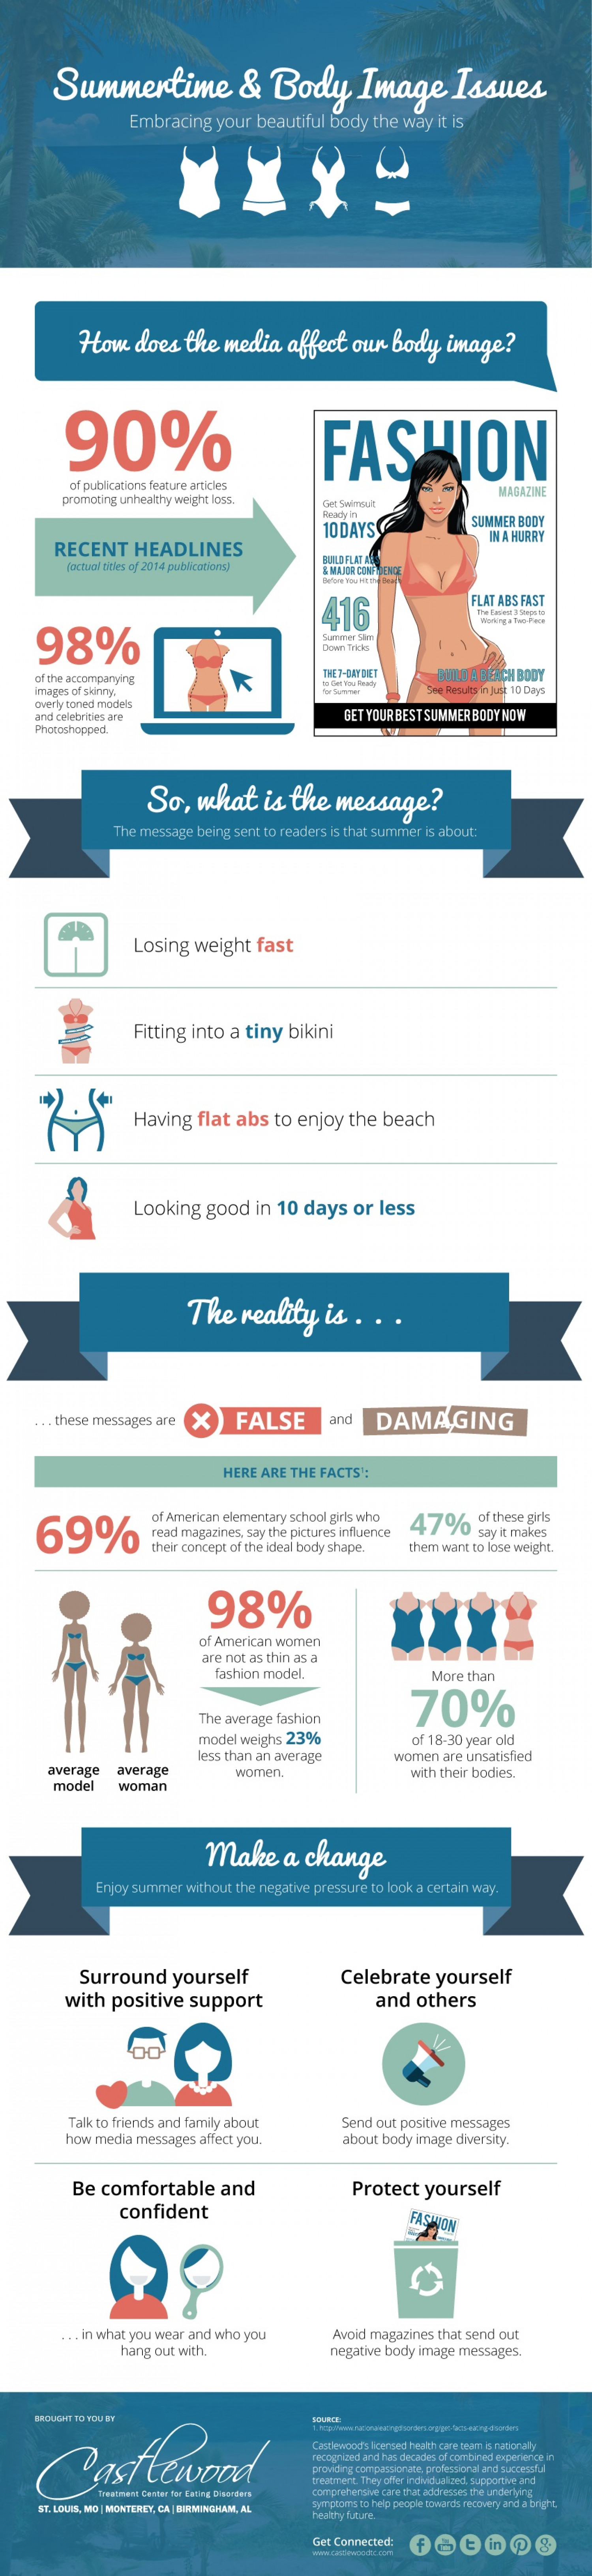 Summertime & Body Image Issues Infographic